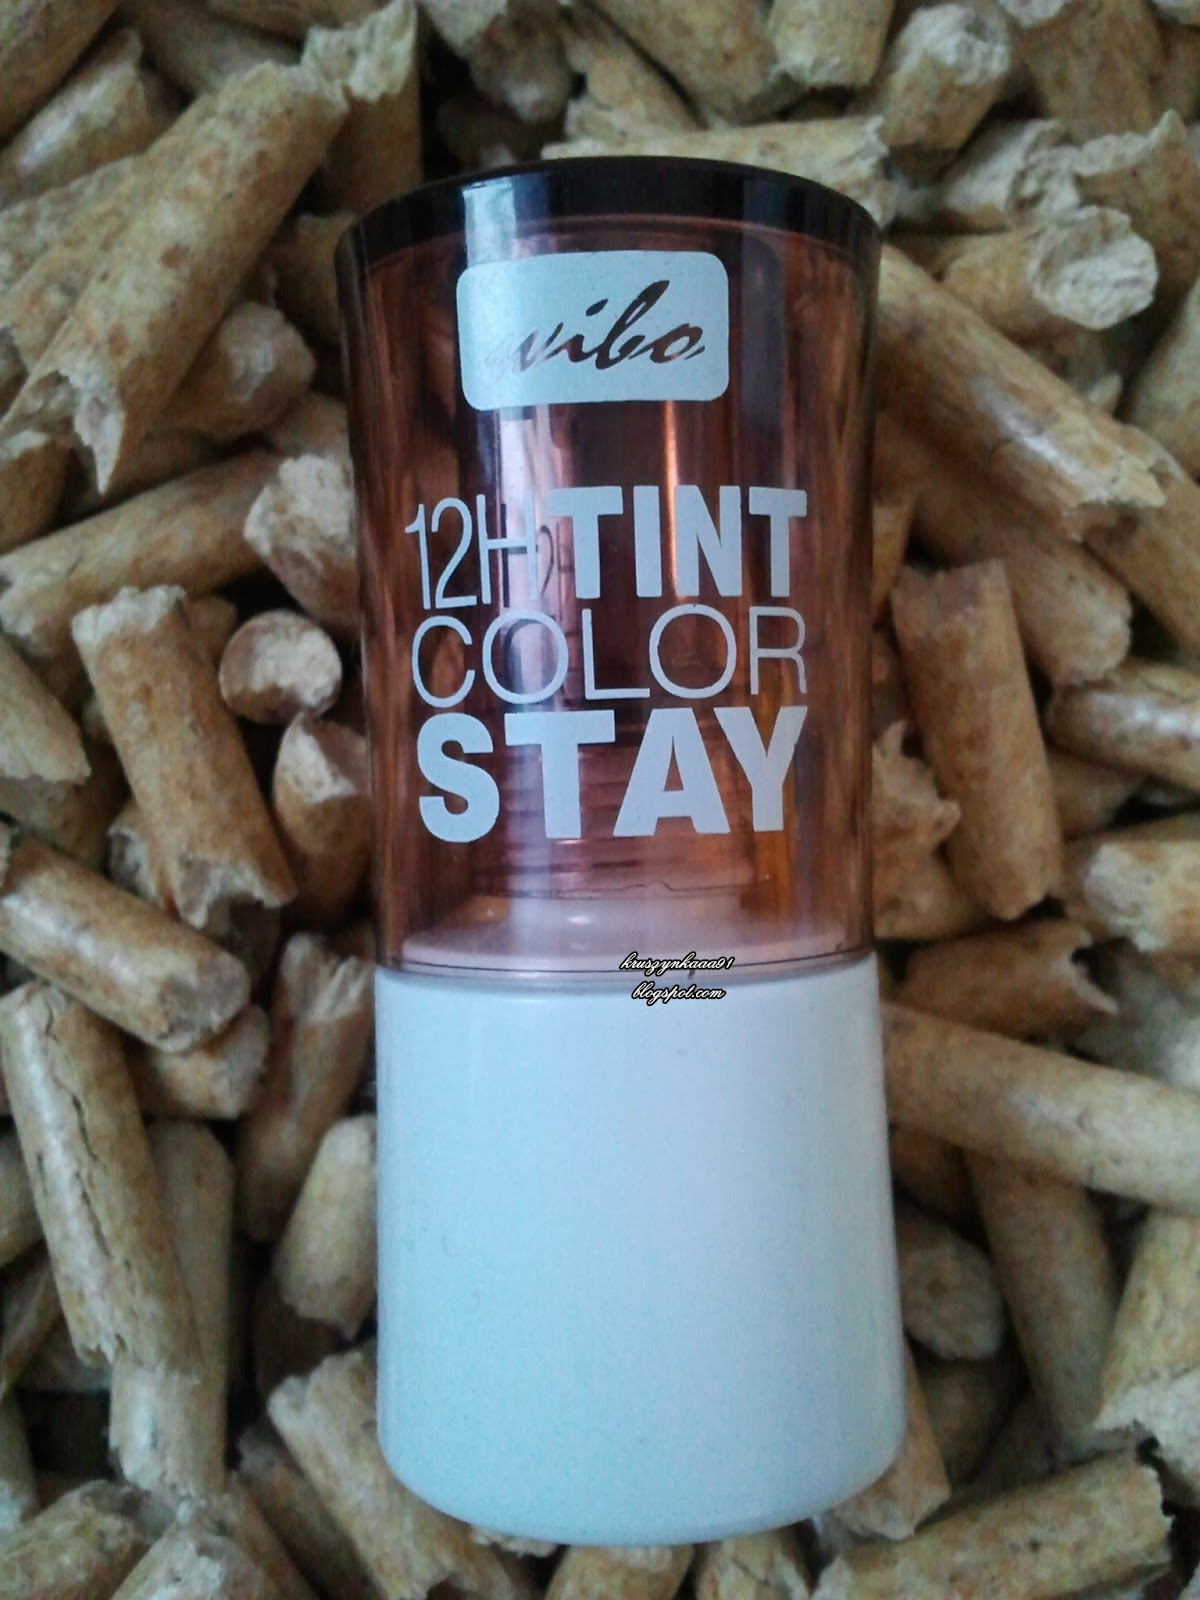 Wibo 12H Tint color stay nr 3